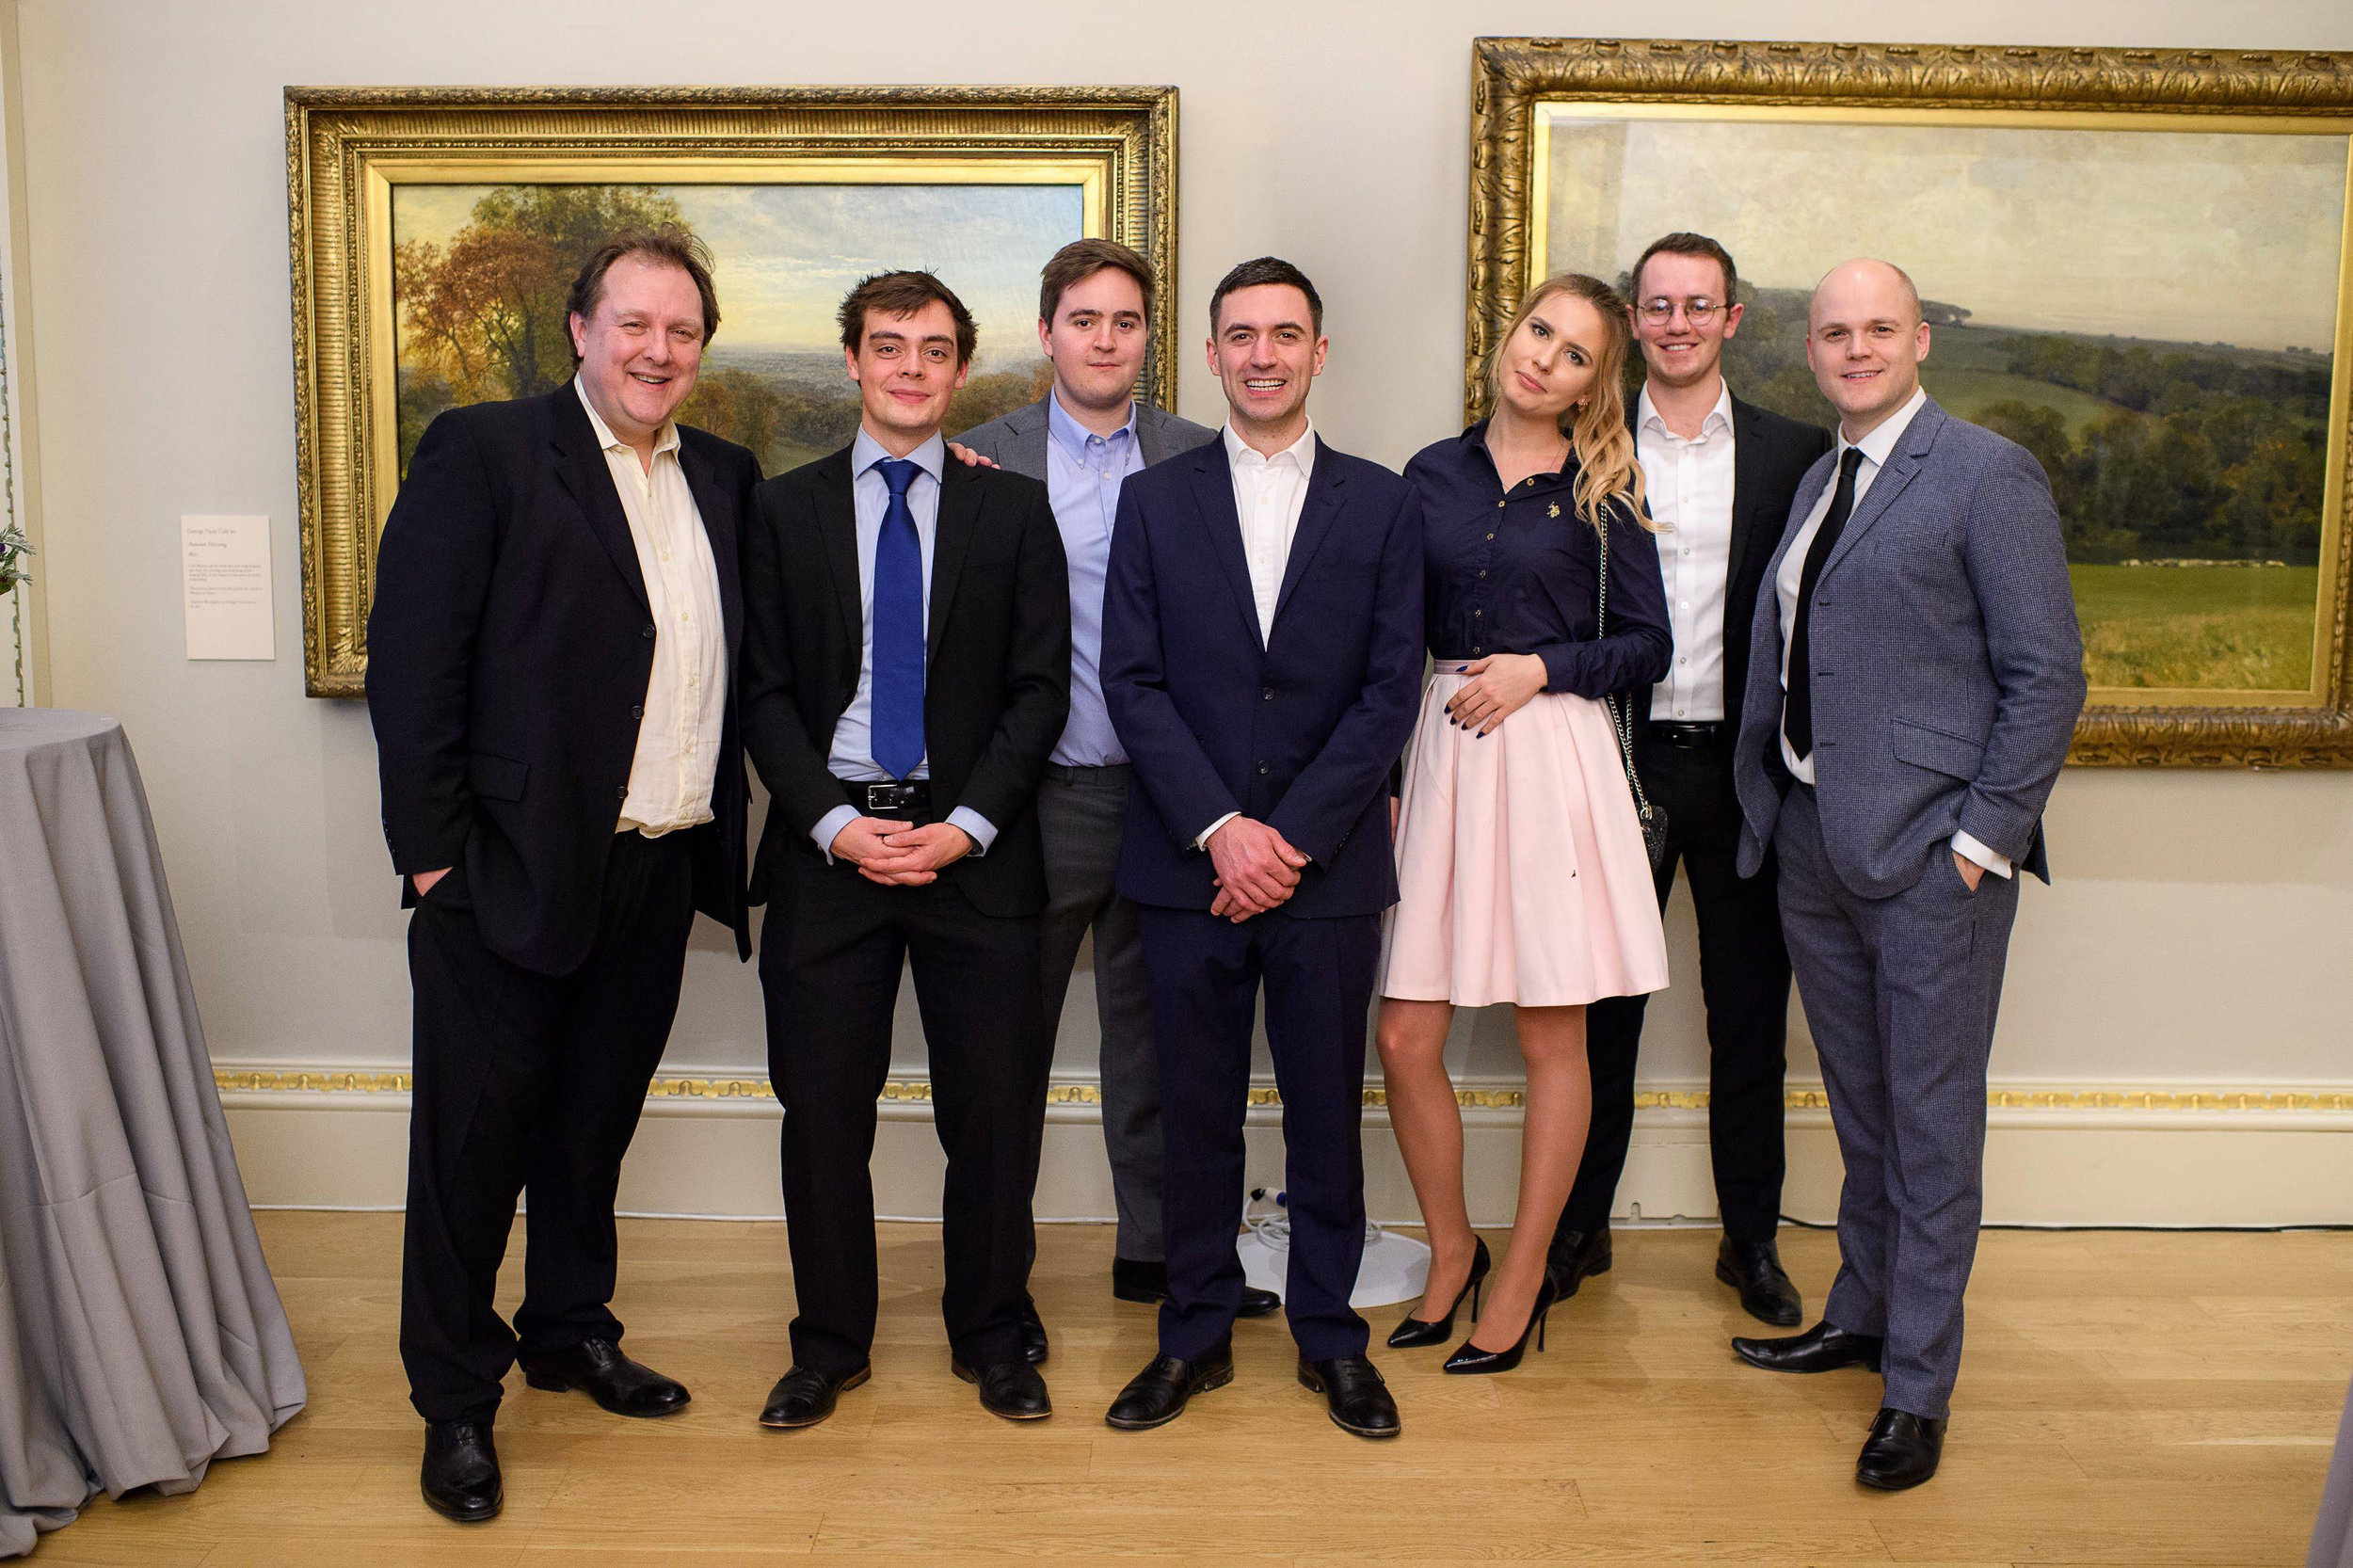 The 3B team at the Watercolour World site launch at The Royal Academy, 31st January 2019